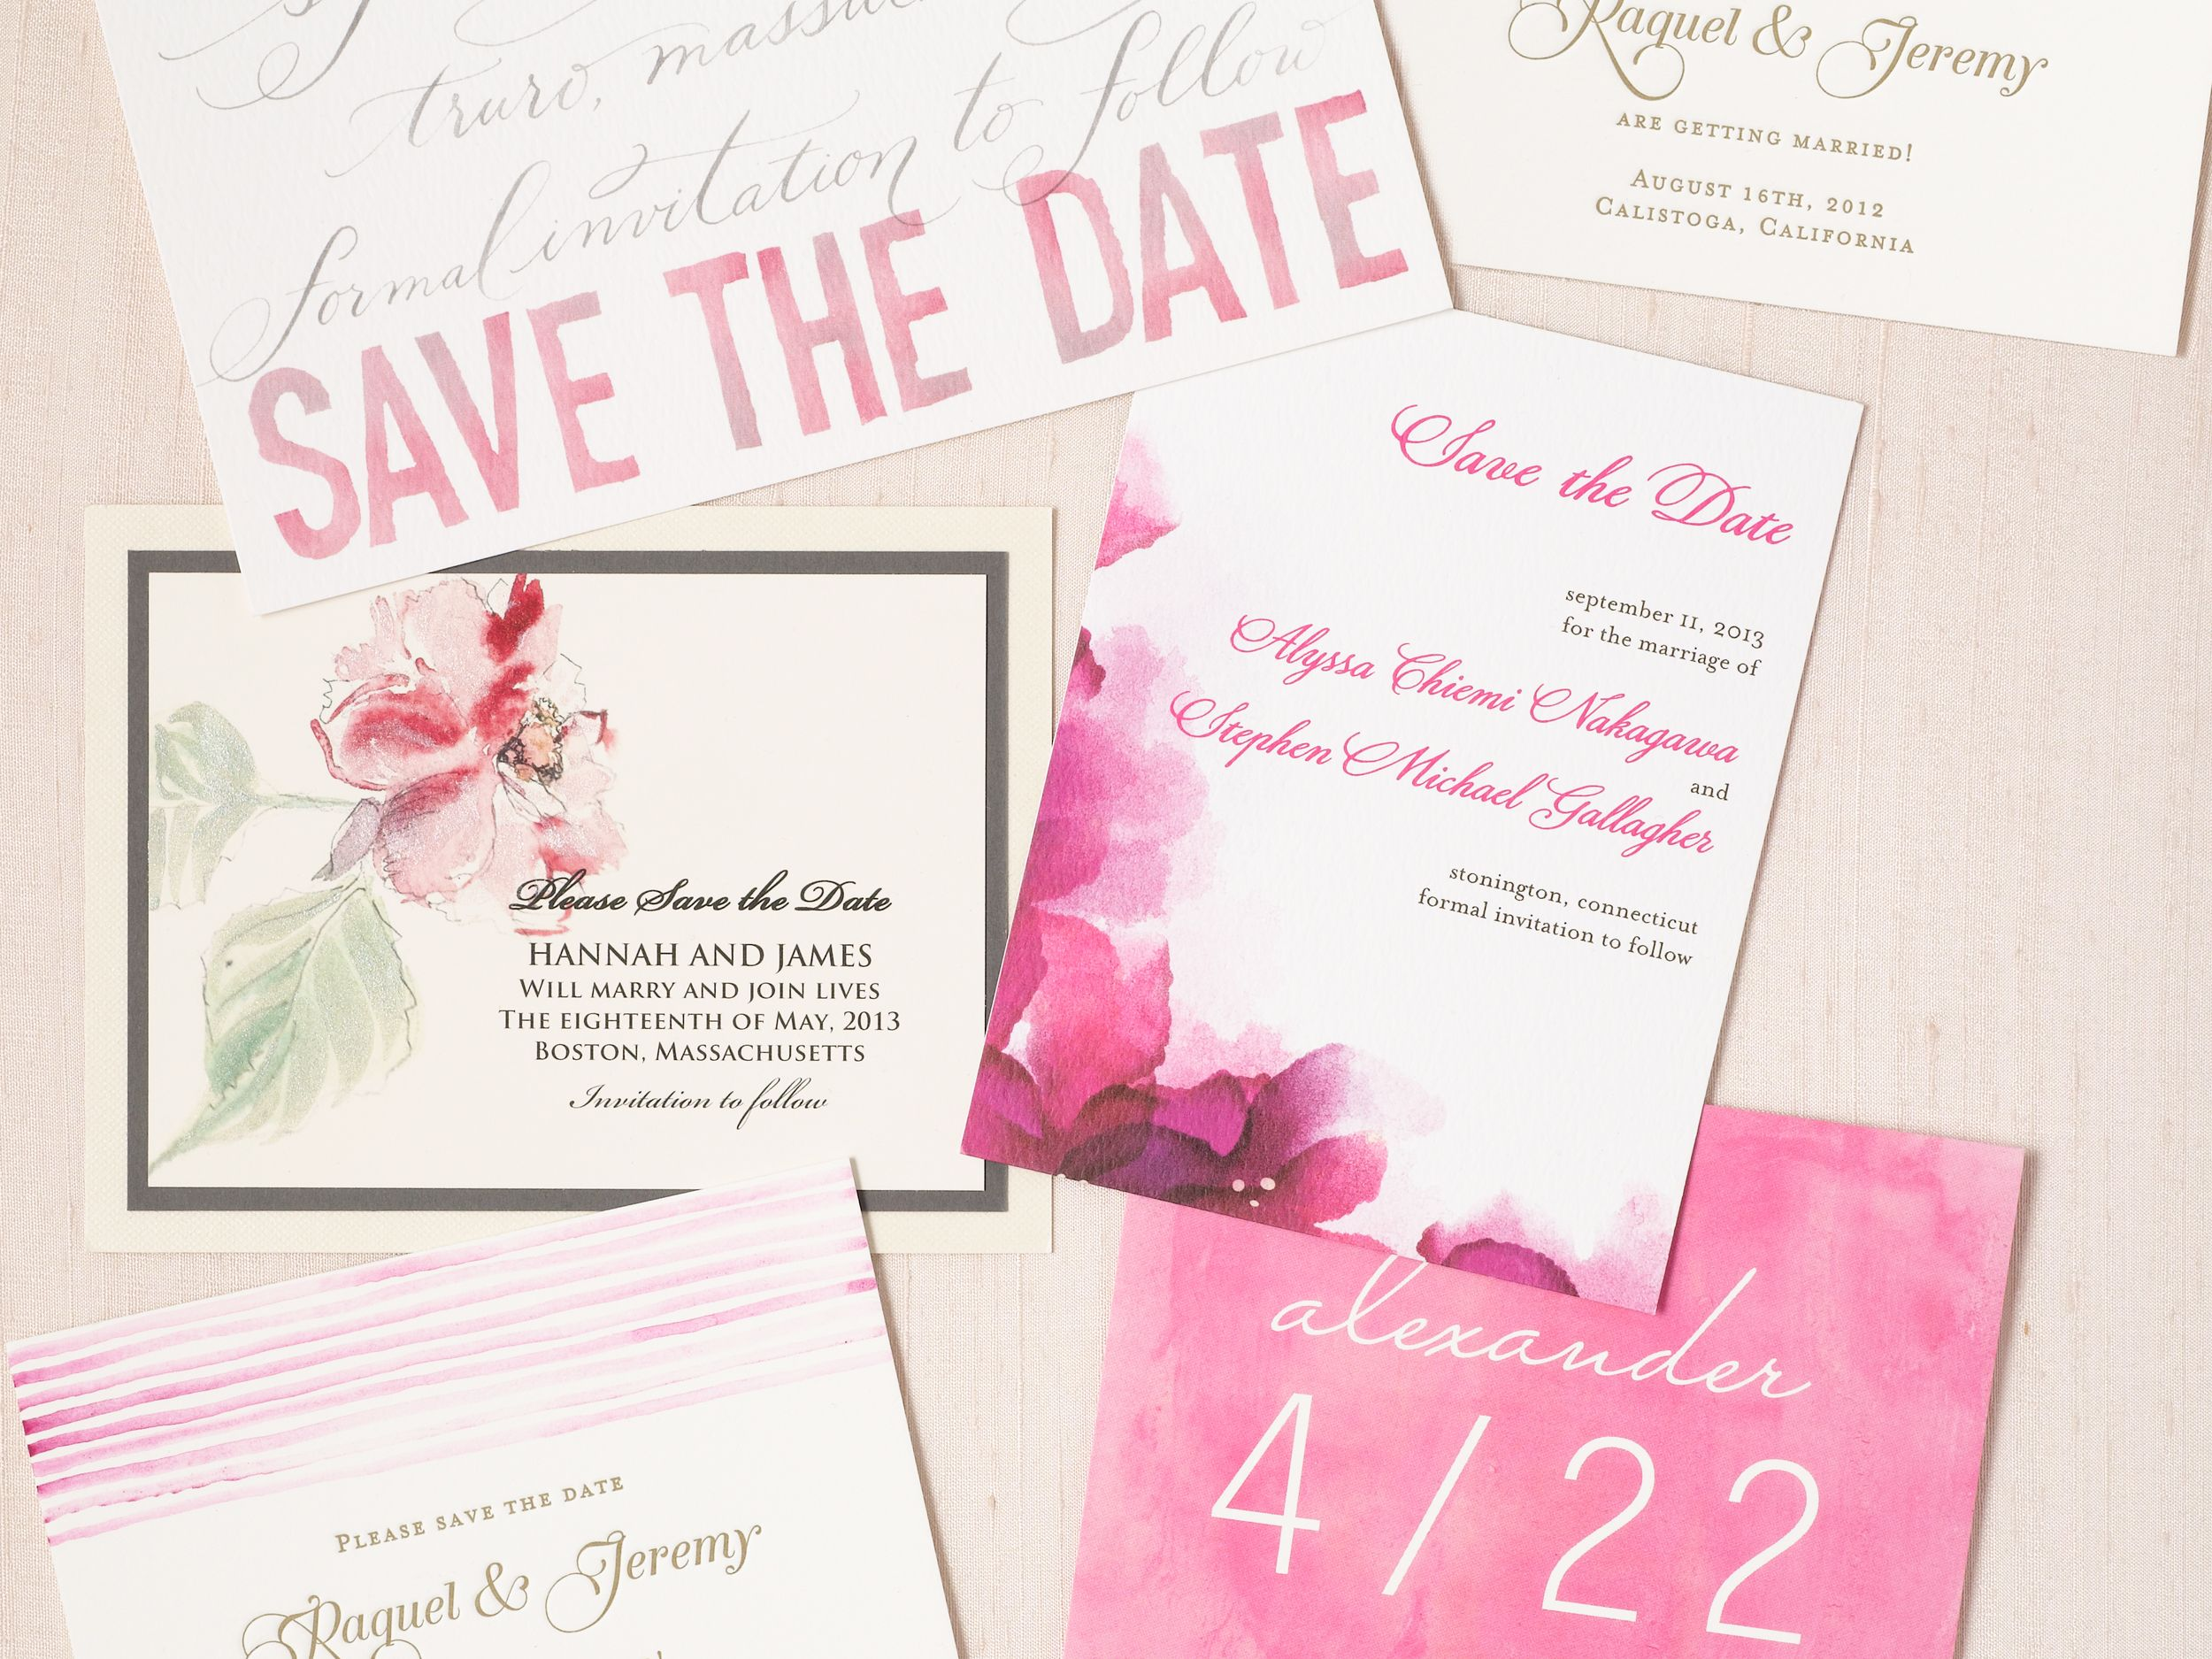 address wedding invitation unmarried couple%0A SavetheDate Etiquette